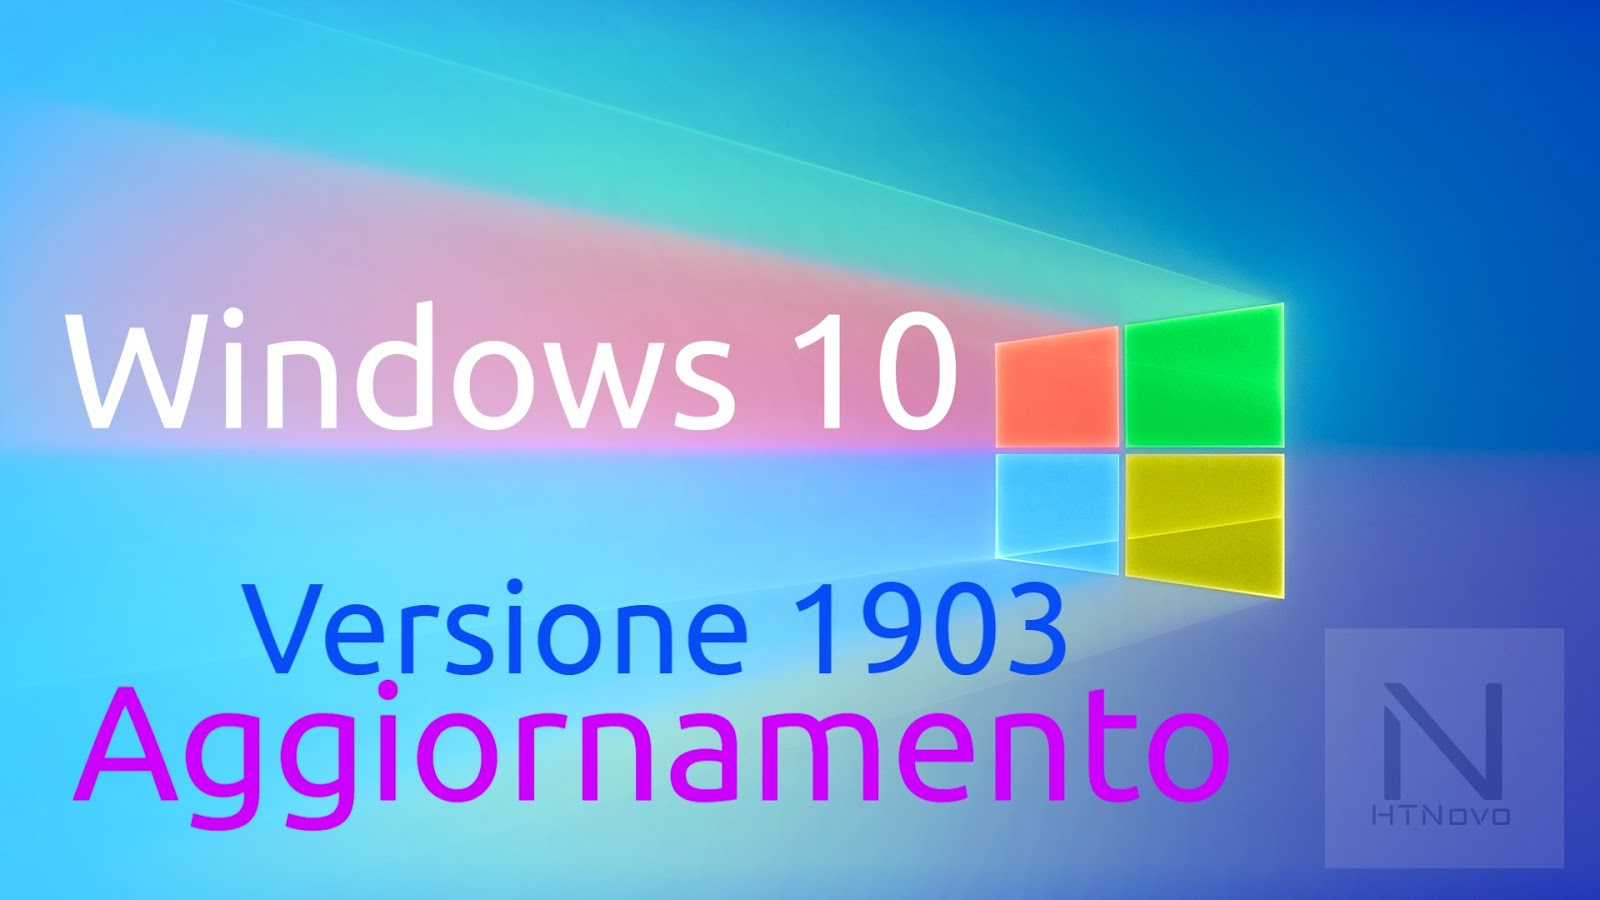 Windows-10-v1903-may-2019-update-aggiornamento